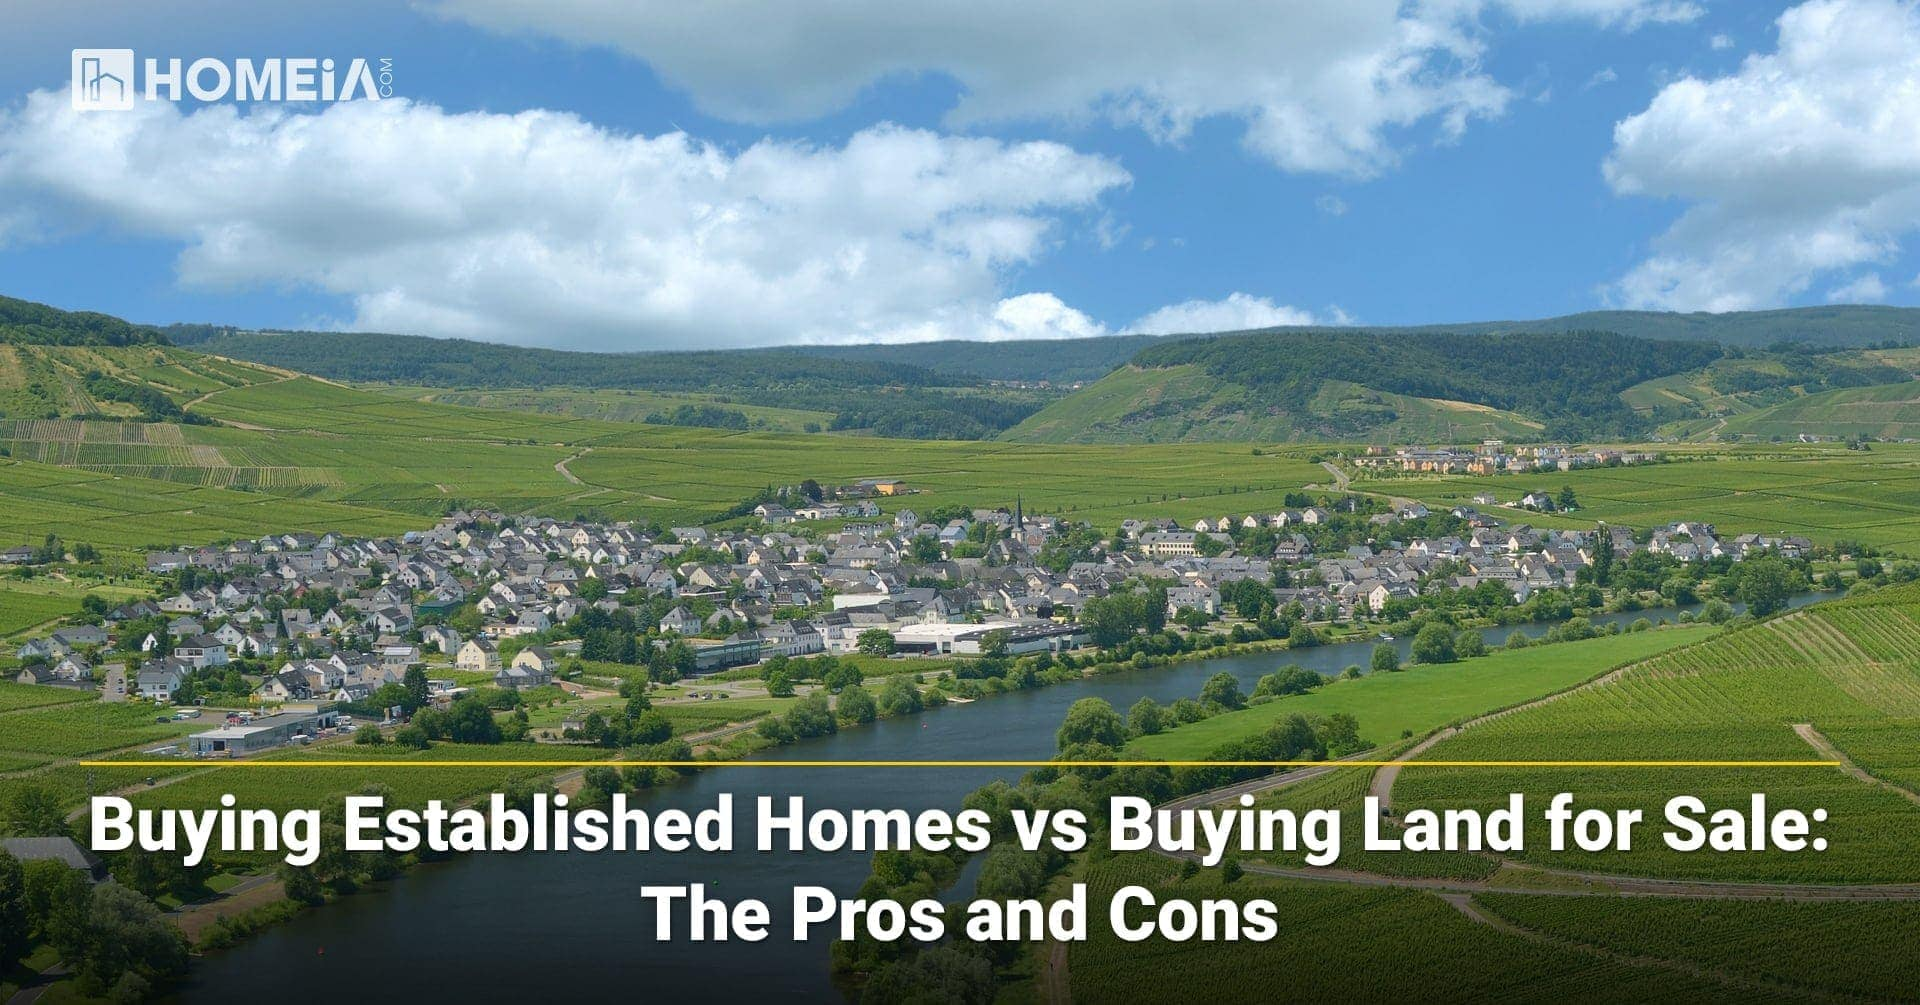 Buying Established Homes vs. Buying Land for Sale: The Pros and Cons